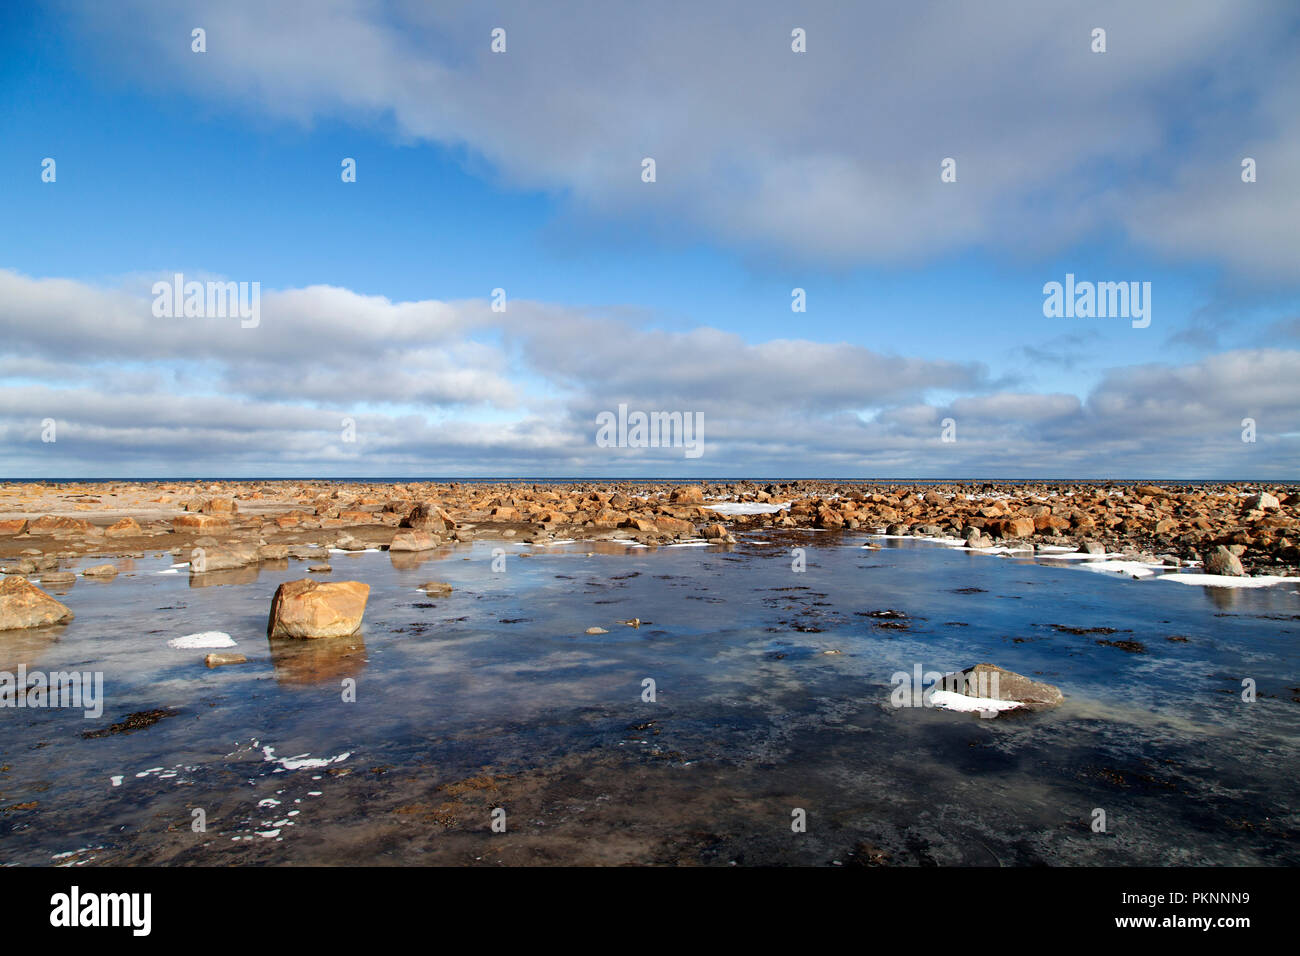 Icy rocks by the shore of the Hudson Bay in Manitoba, Canada. The Bay freezes during winter. - Stock Image